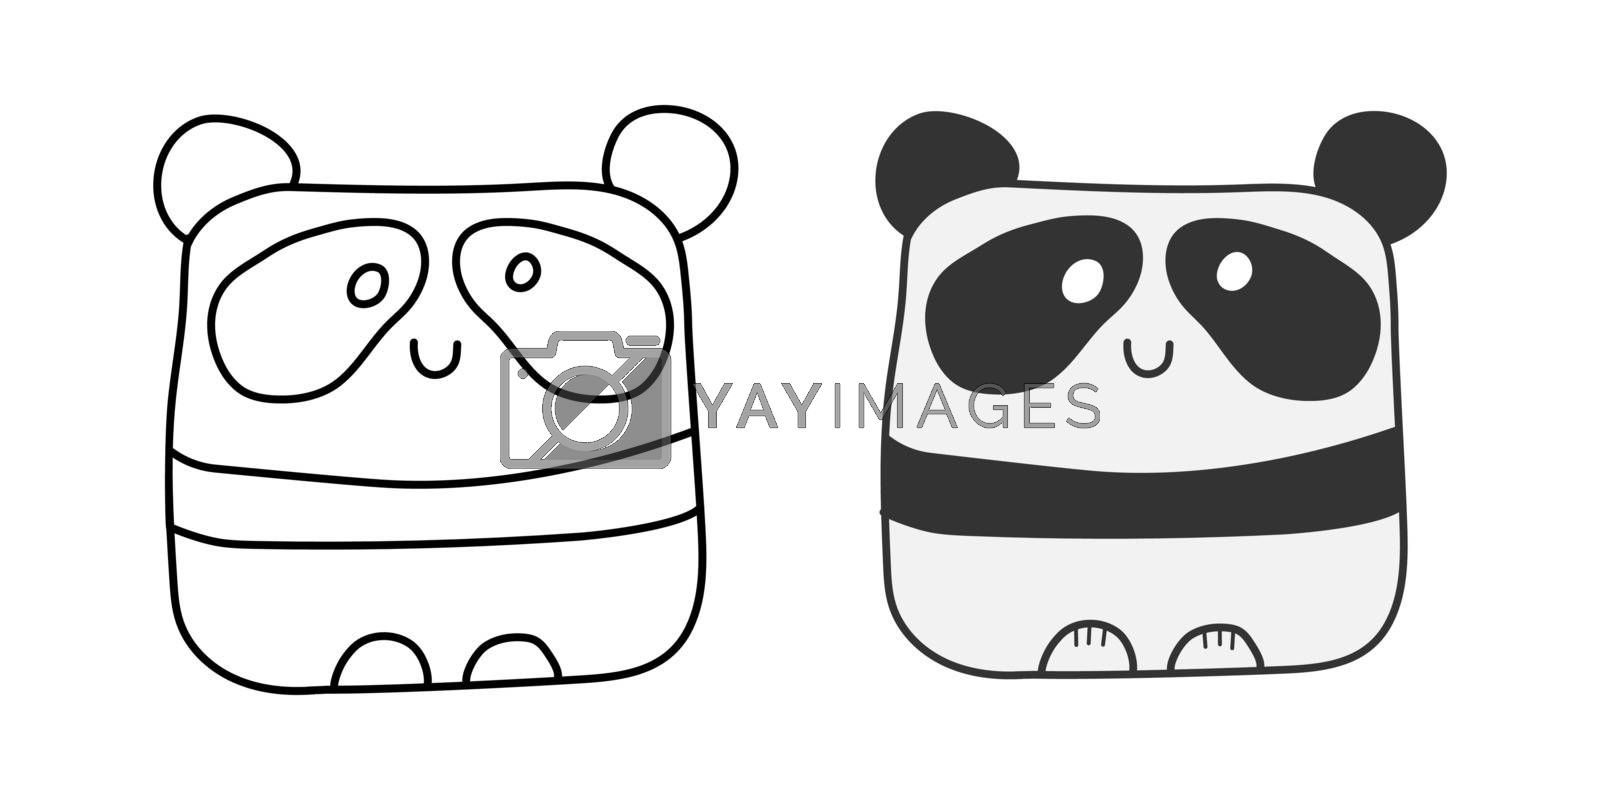 Set of abstract Panda images. Empty silhouette and filled contour for coloring, sticker, theme design and decoration.